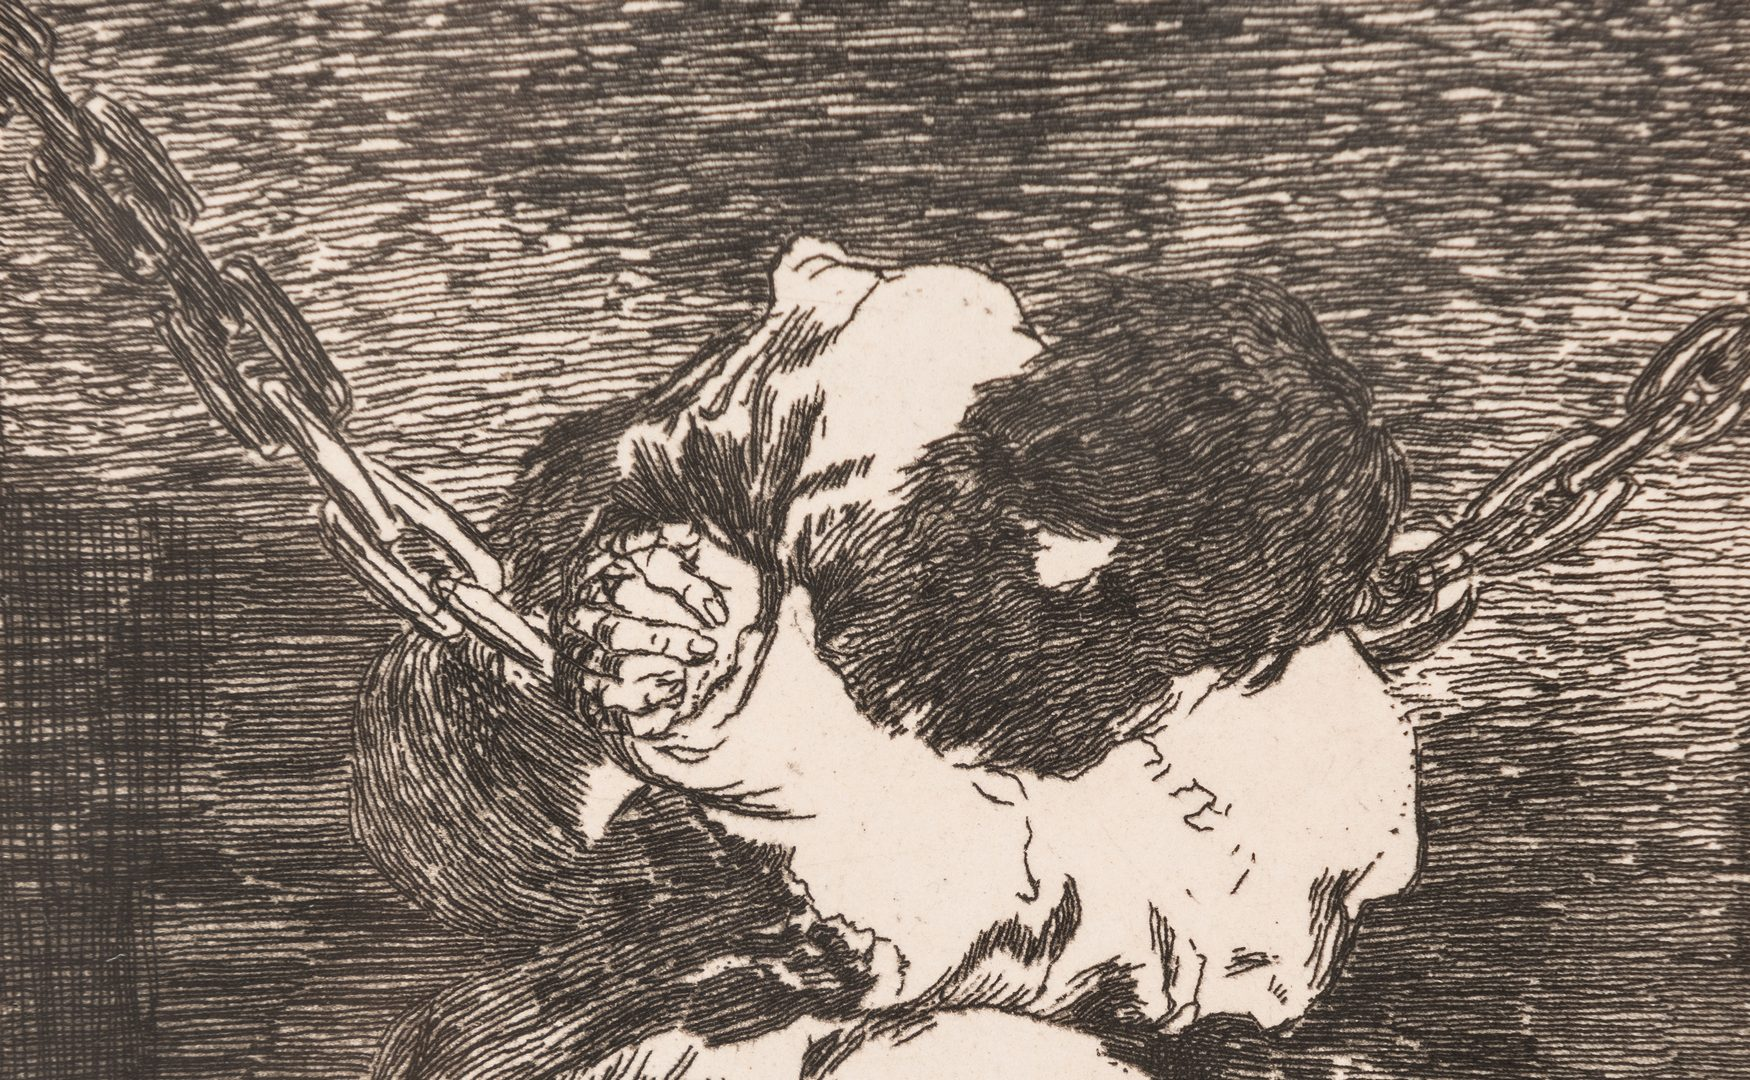 Lot 593: 2 Posthumous Etchings, Goya and Cezanne